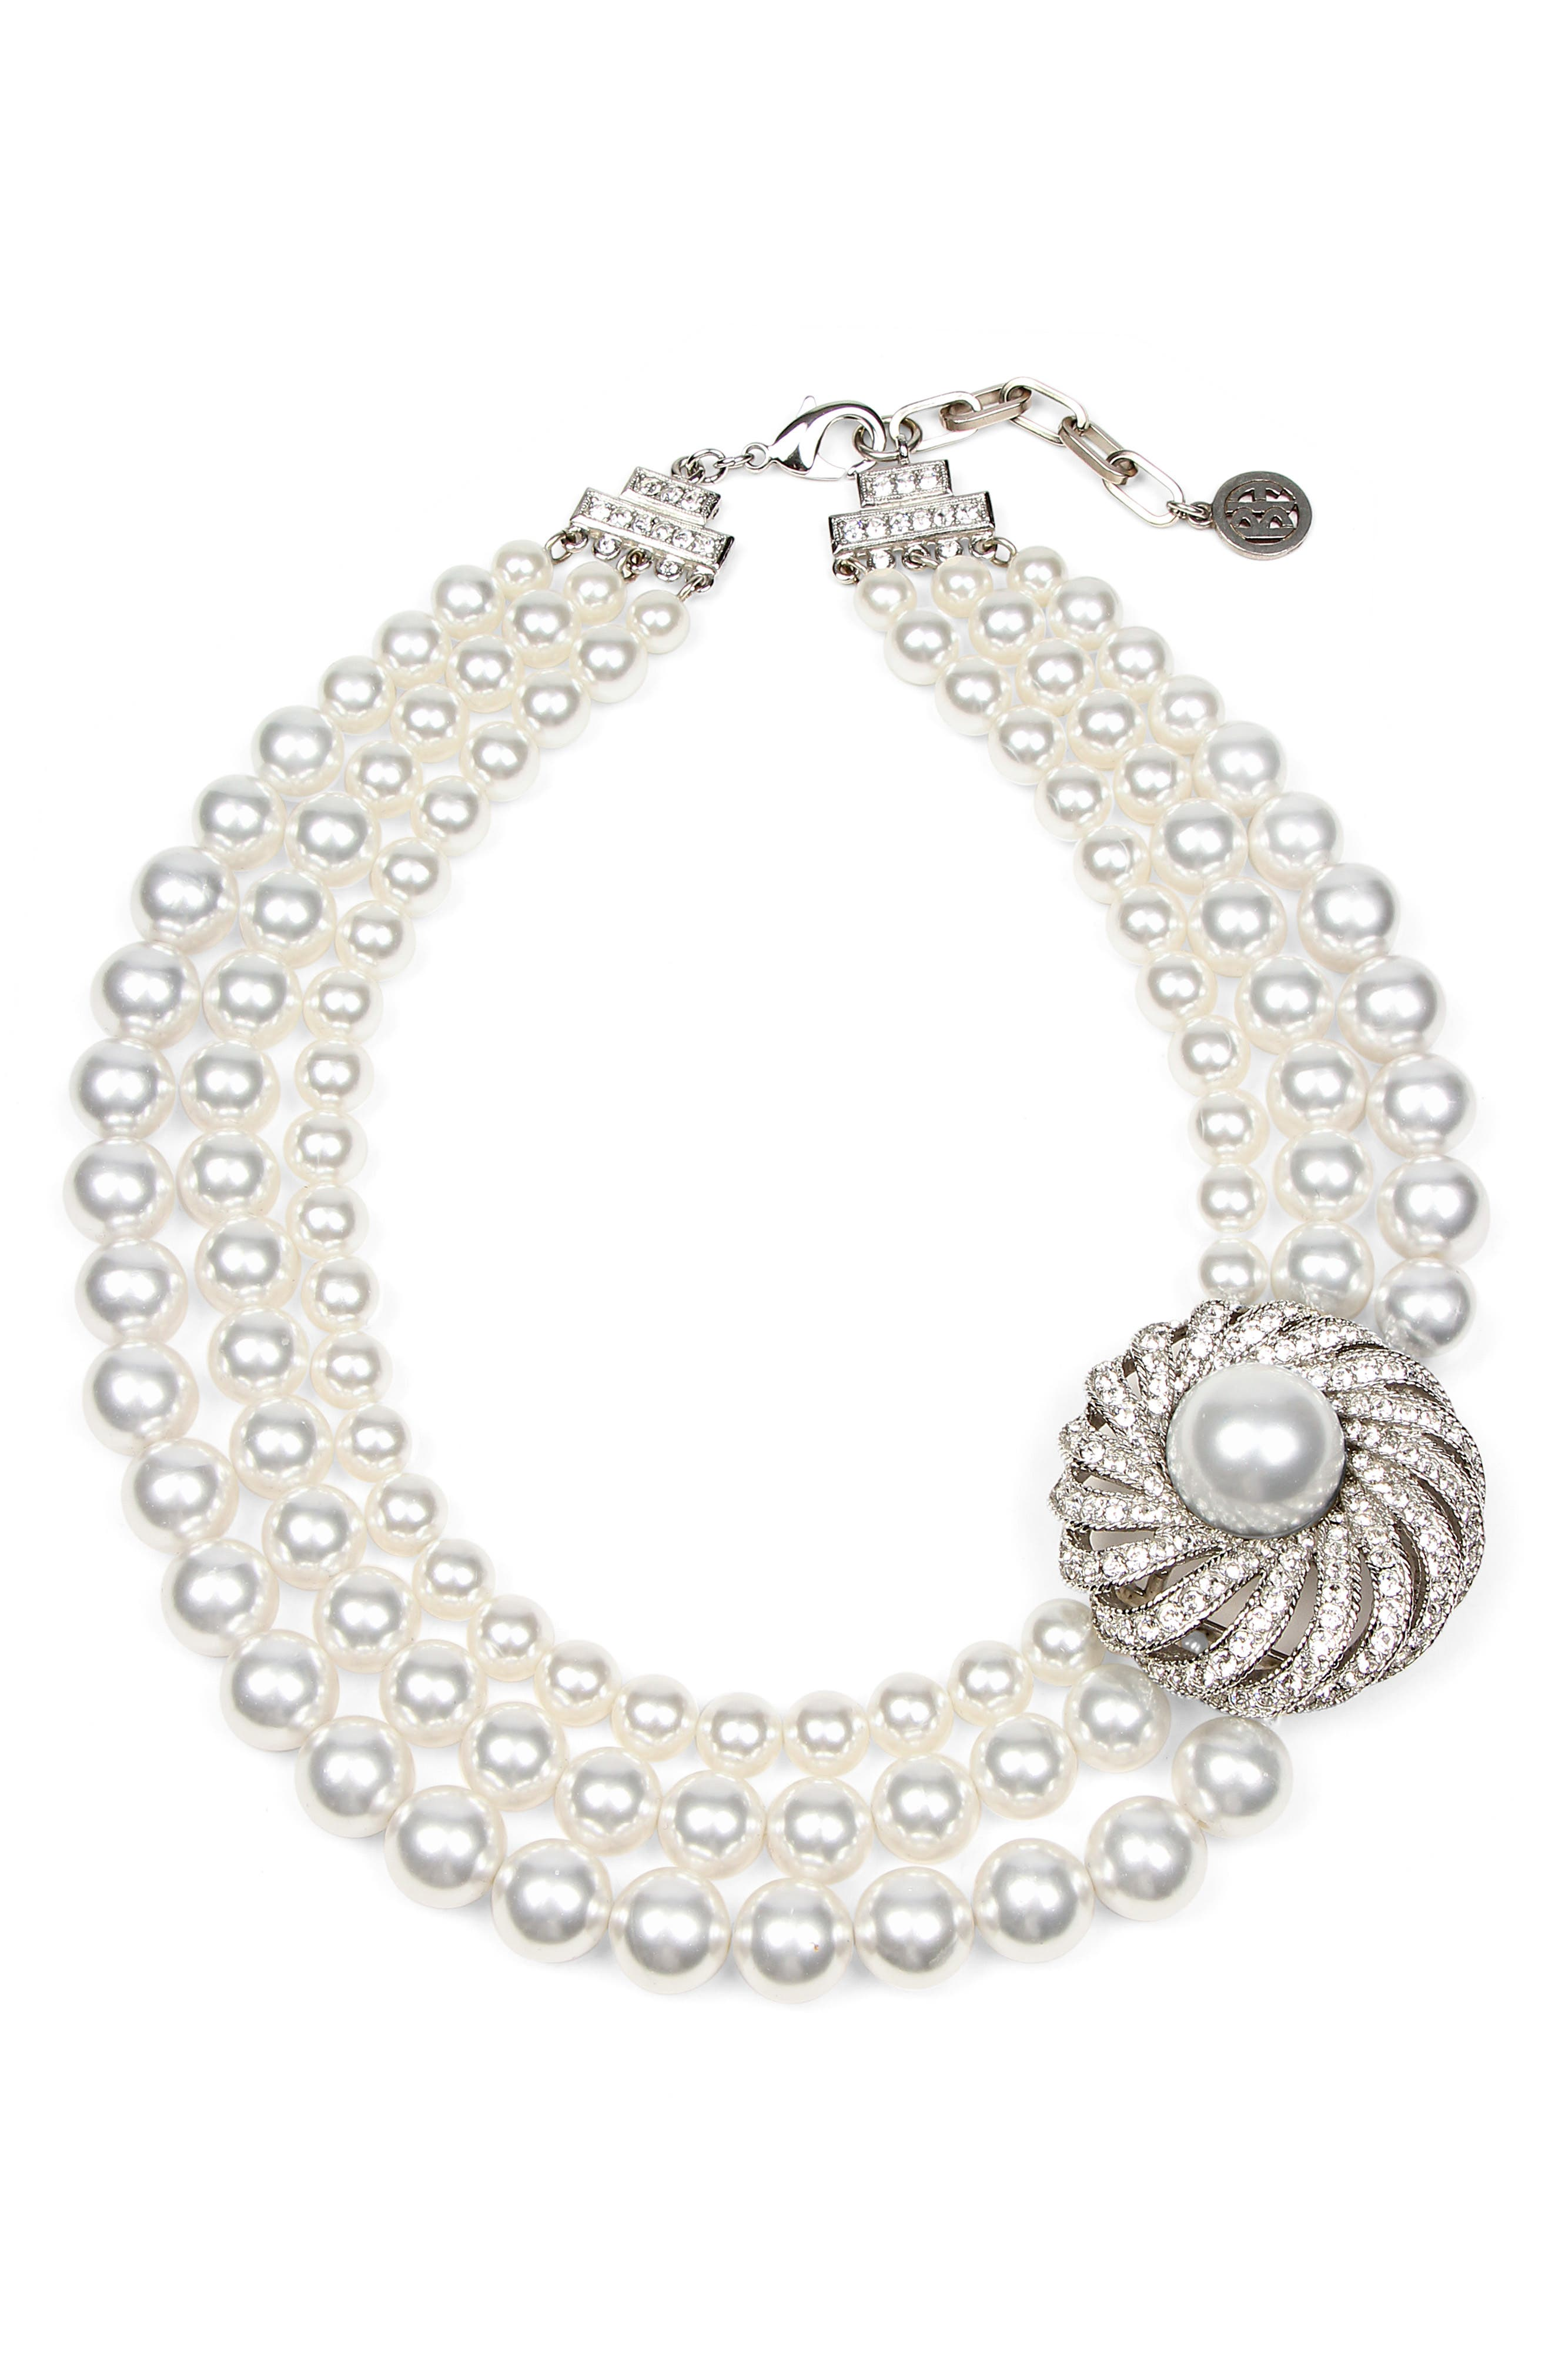 Triple Imitation Pearl Strand Collar Necklace,                             Main thumbnail 1, color,                             SILVER/ BEIGE